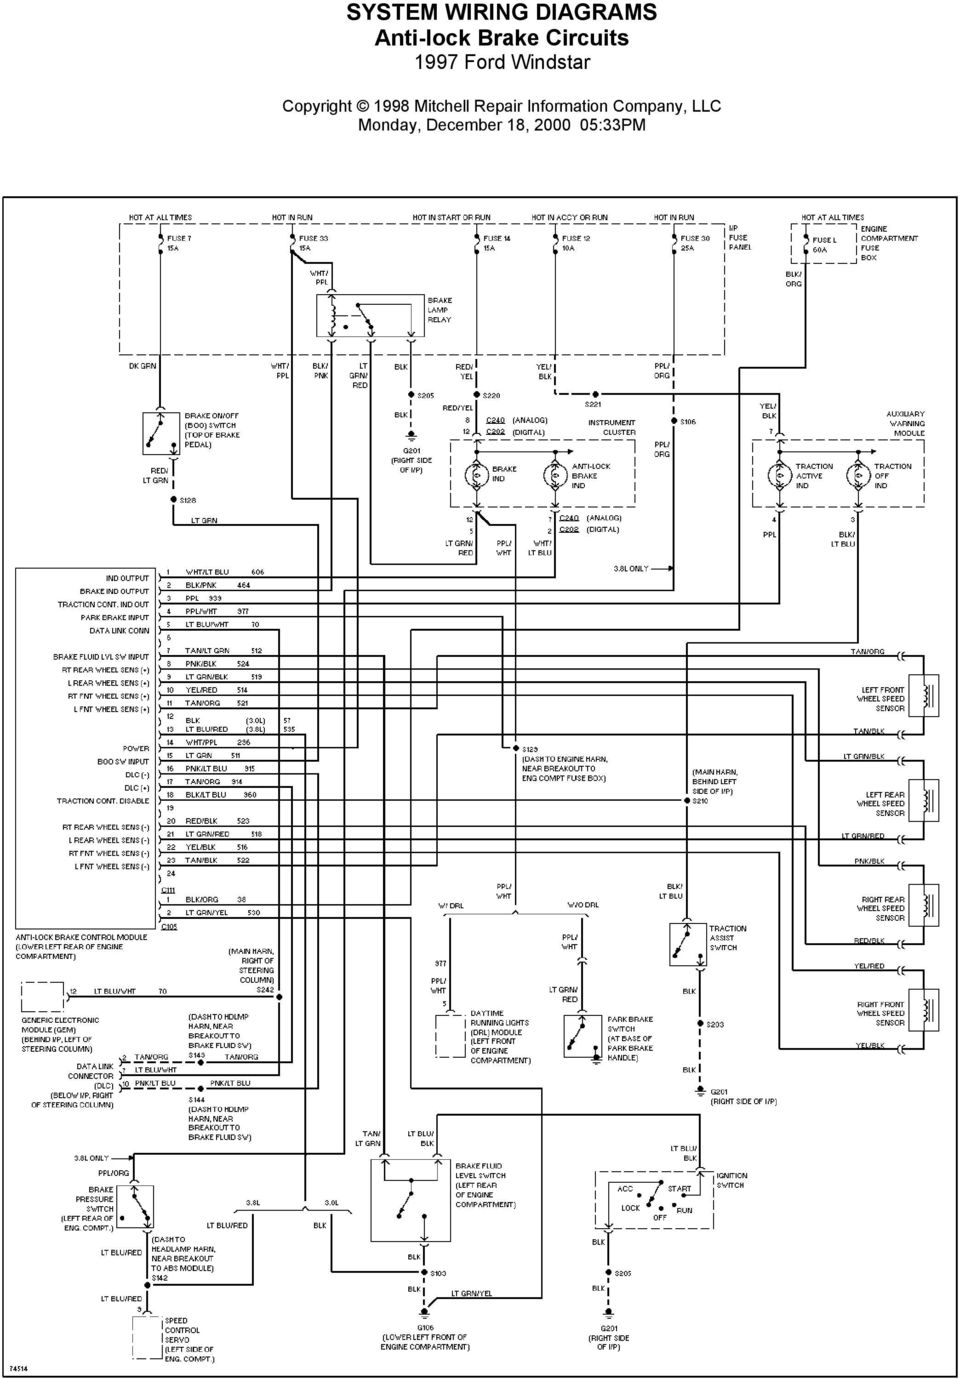 System Wiring Diagrams Air Conditioning Circuits 1997 Ford Windstar Subaru Engine Compartment Diagram Monday